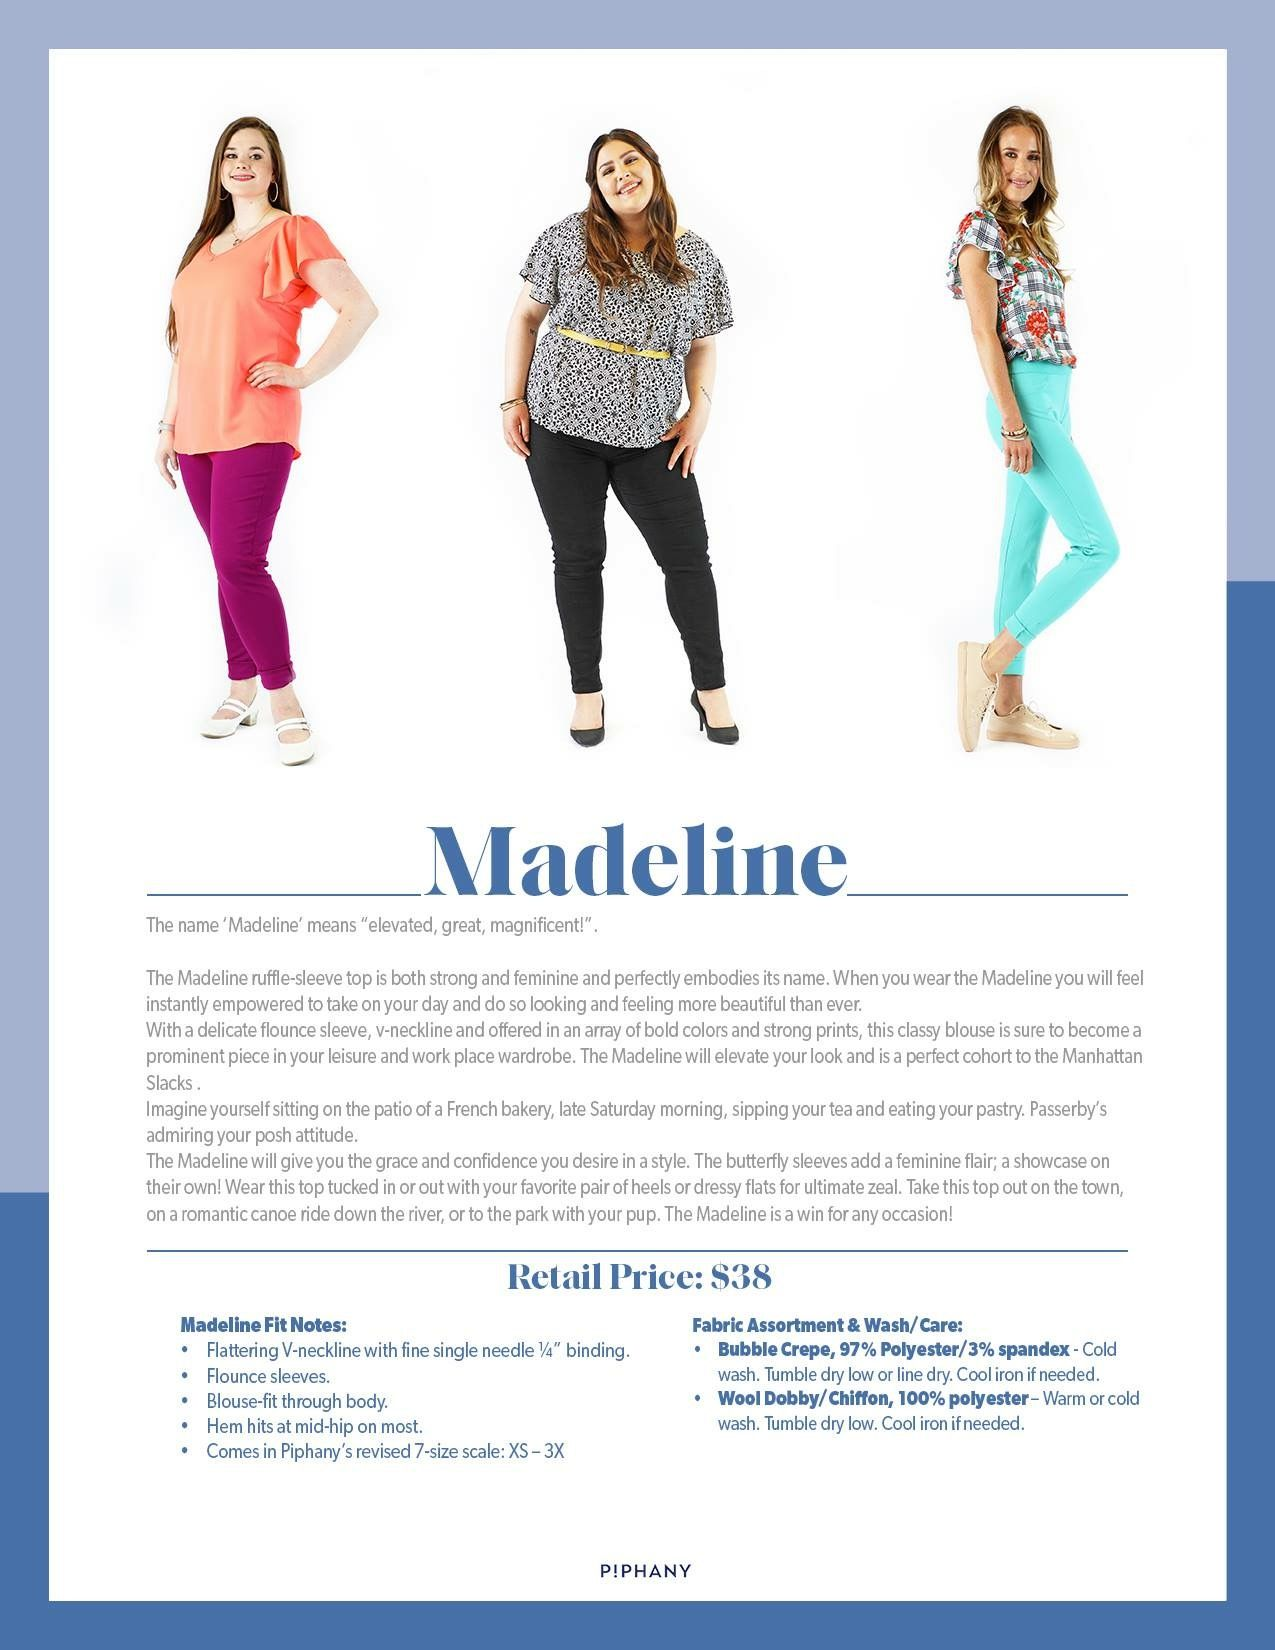 b25067ed4c6d6 Piphany Madeline | Piphany Styles | Tops, Boutique, Wonderful things